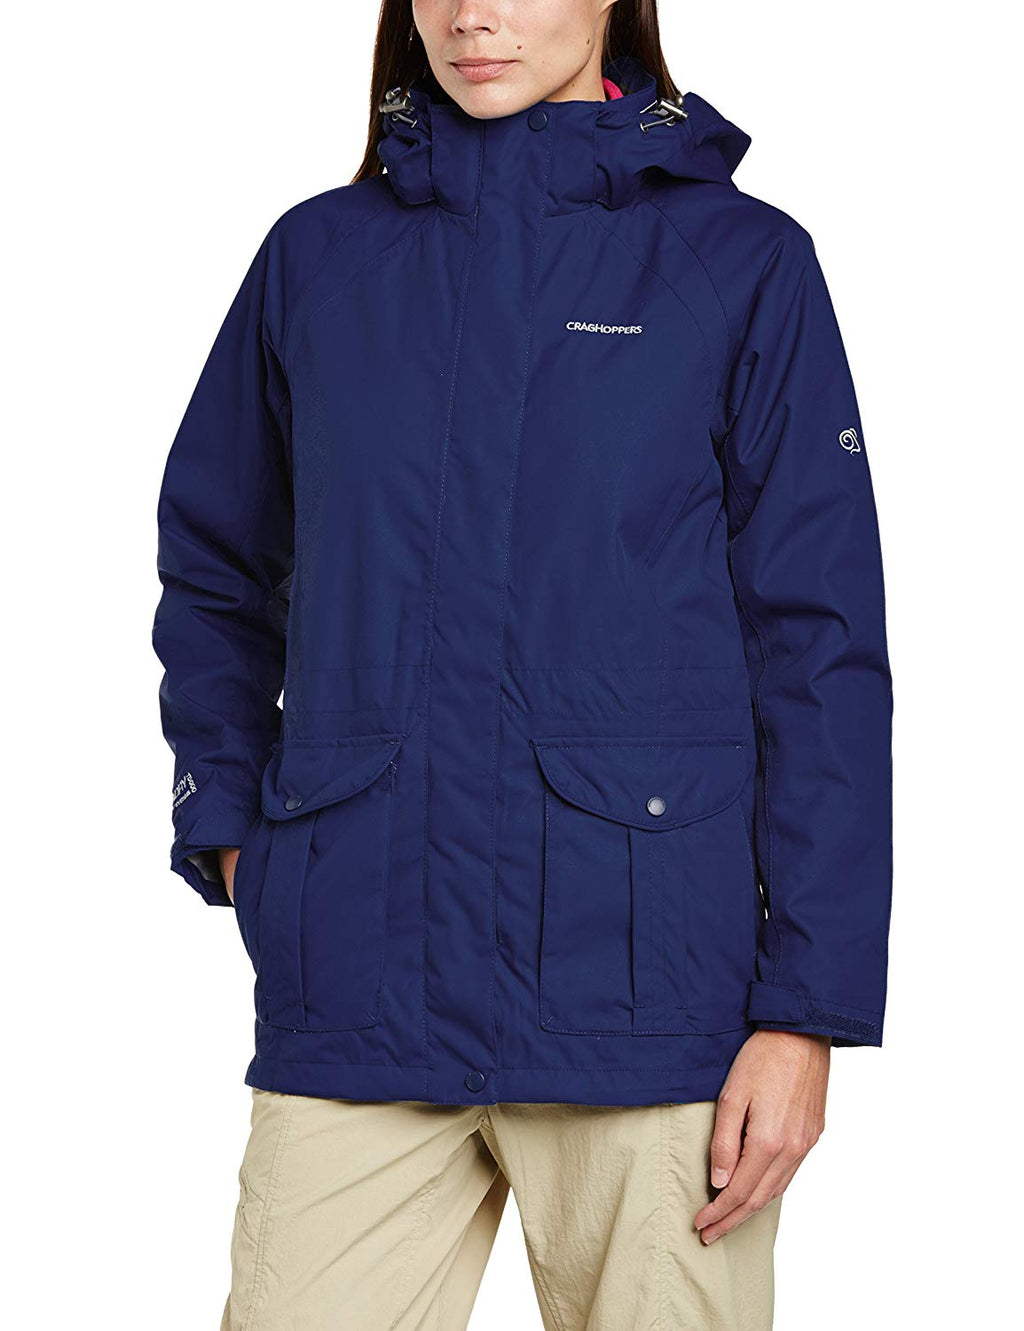 Craghoppers Women's Waterproof Madigan Jacket